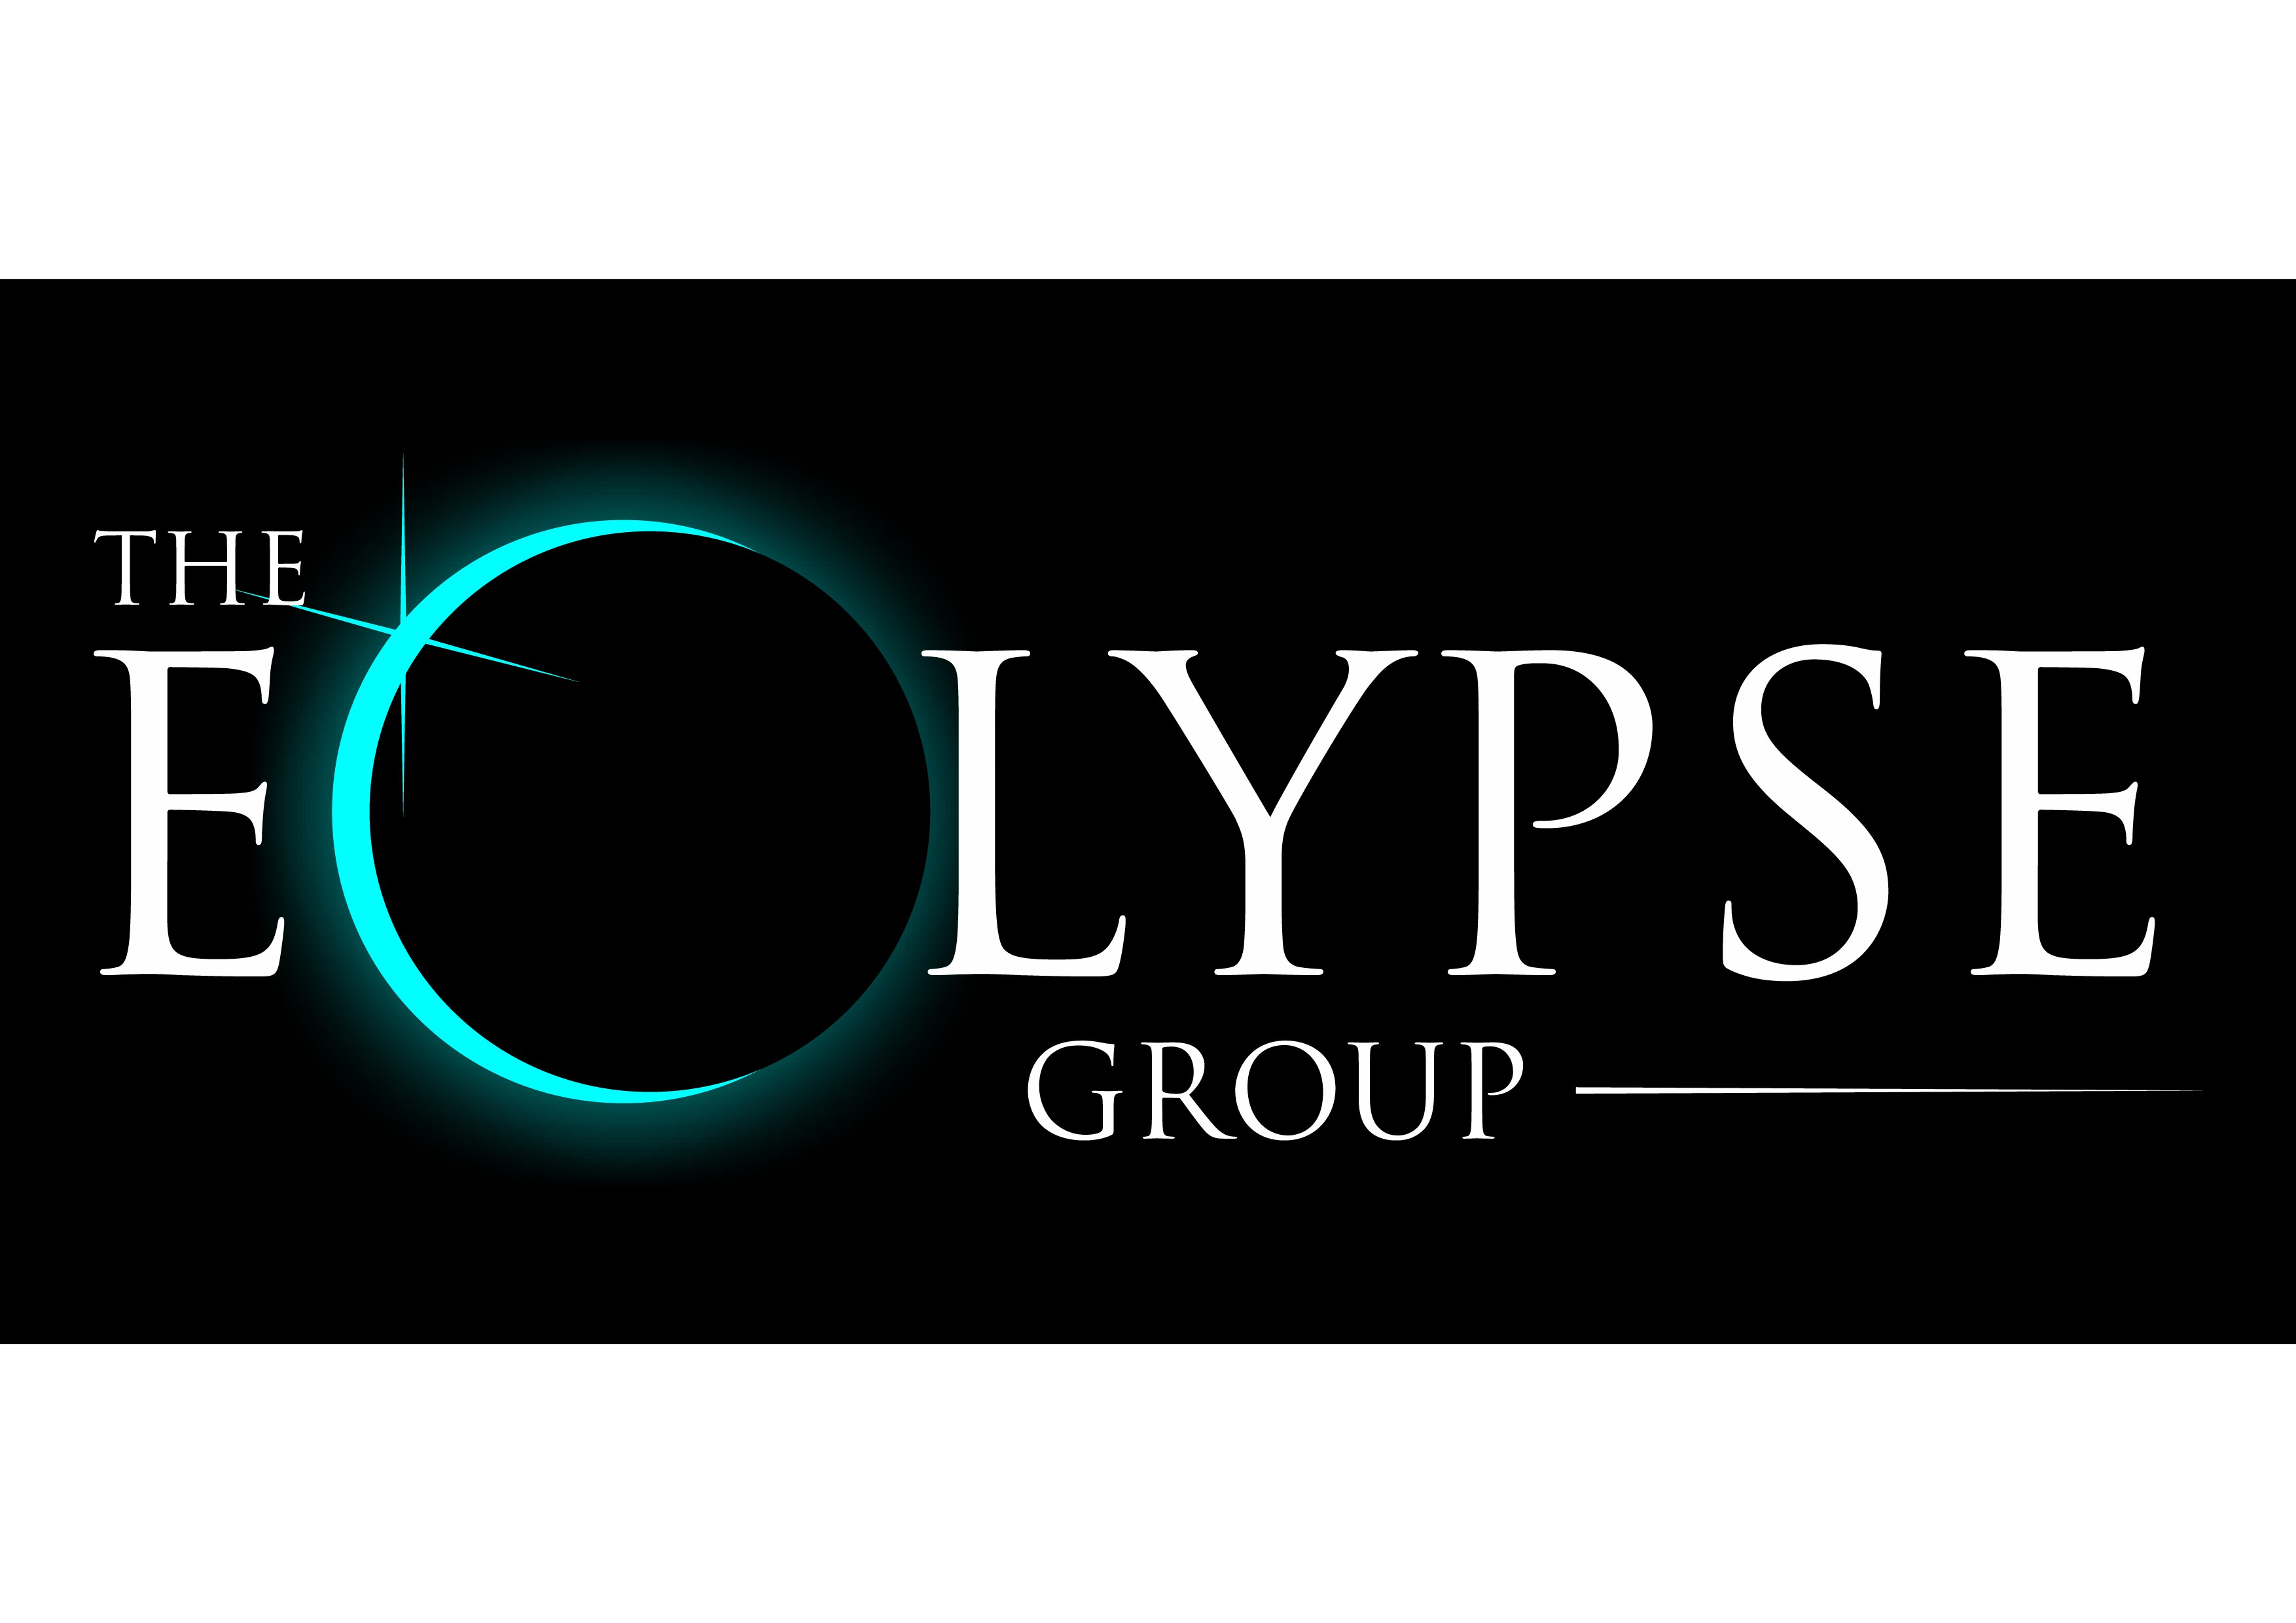 Create a sophisticated website/logo/brand for The Eclypse Group!